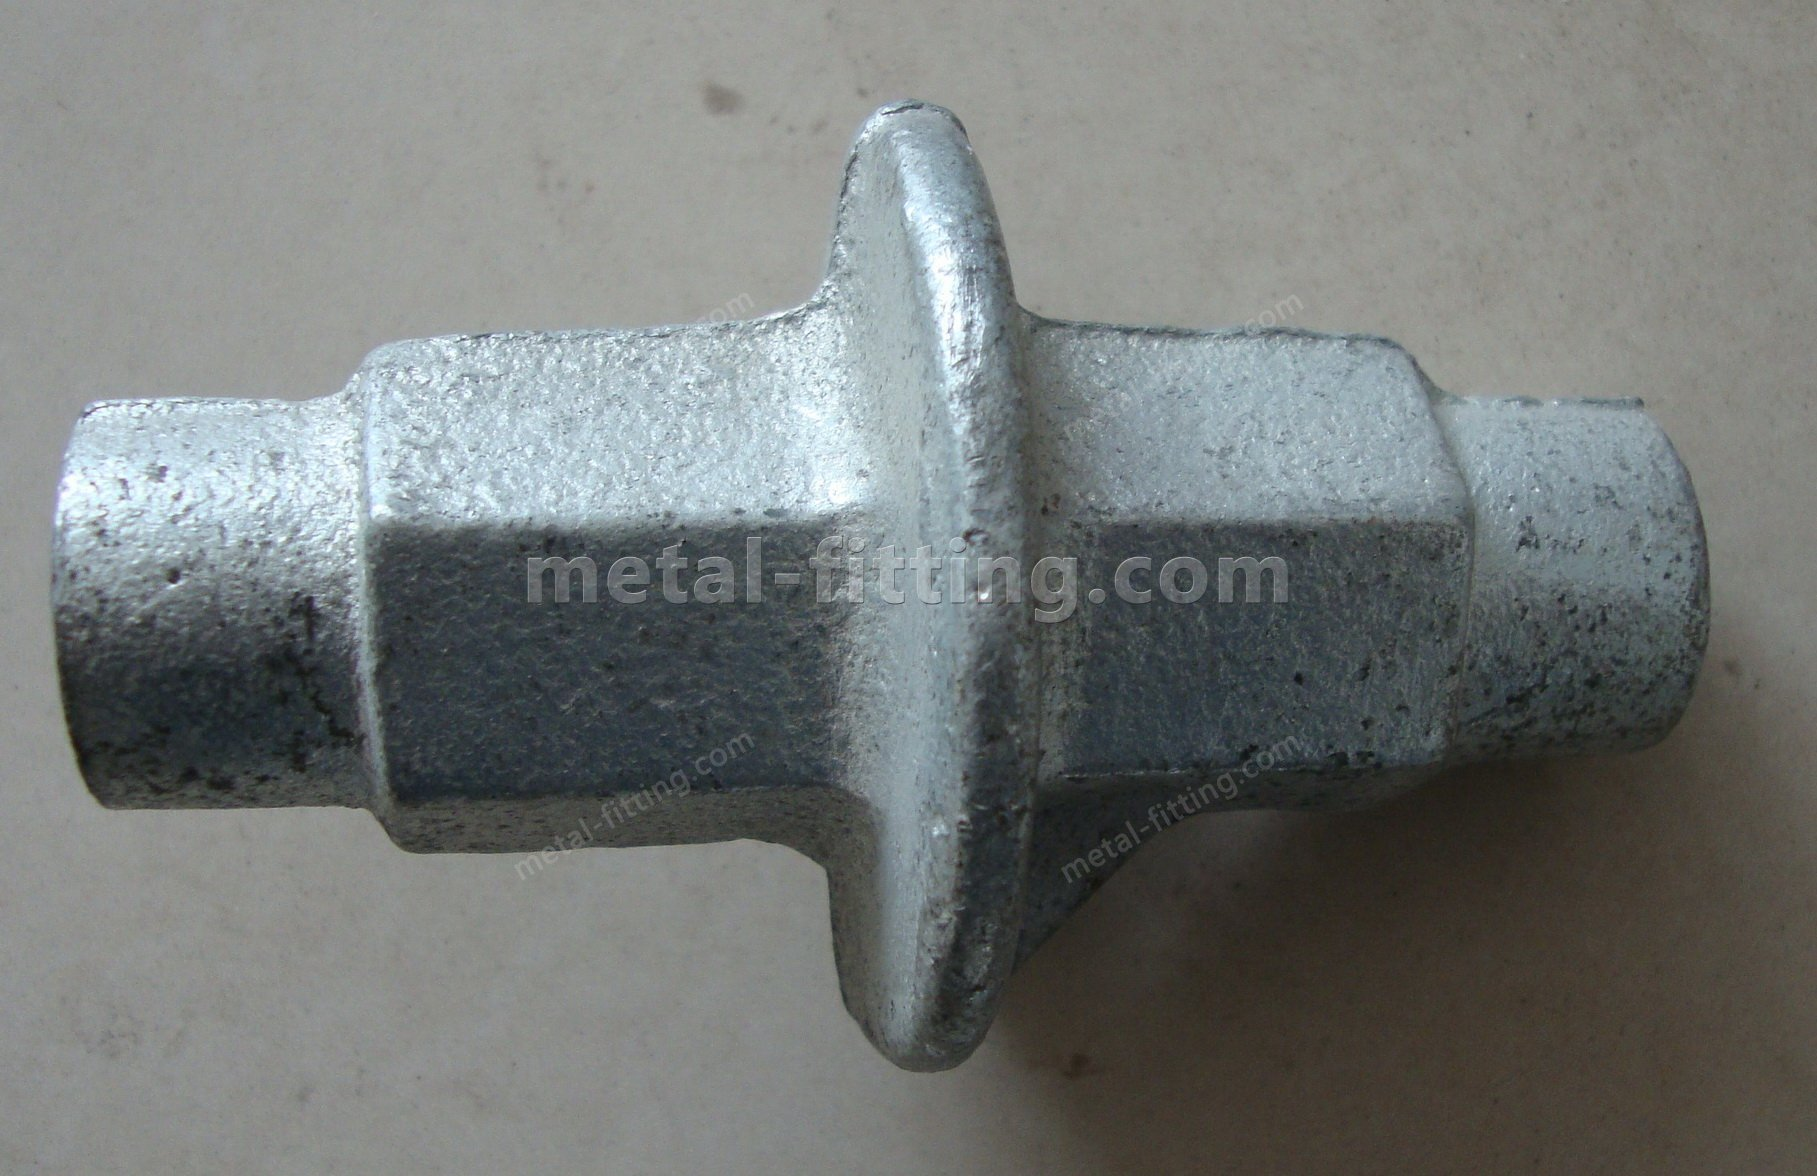 Galvanized wing nut imperial nuts and bolts of scaffold fittings-water stopper